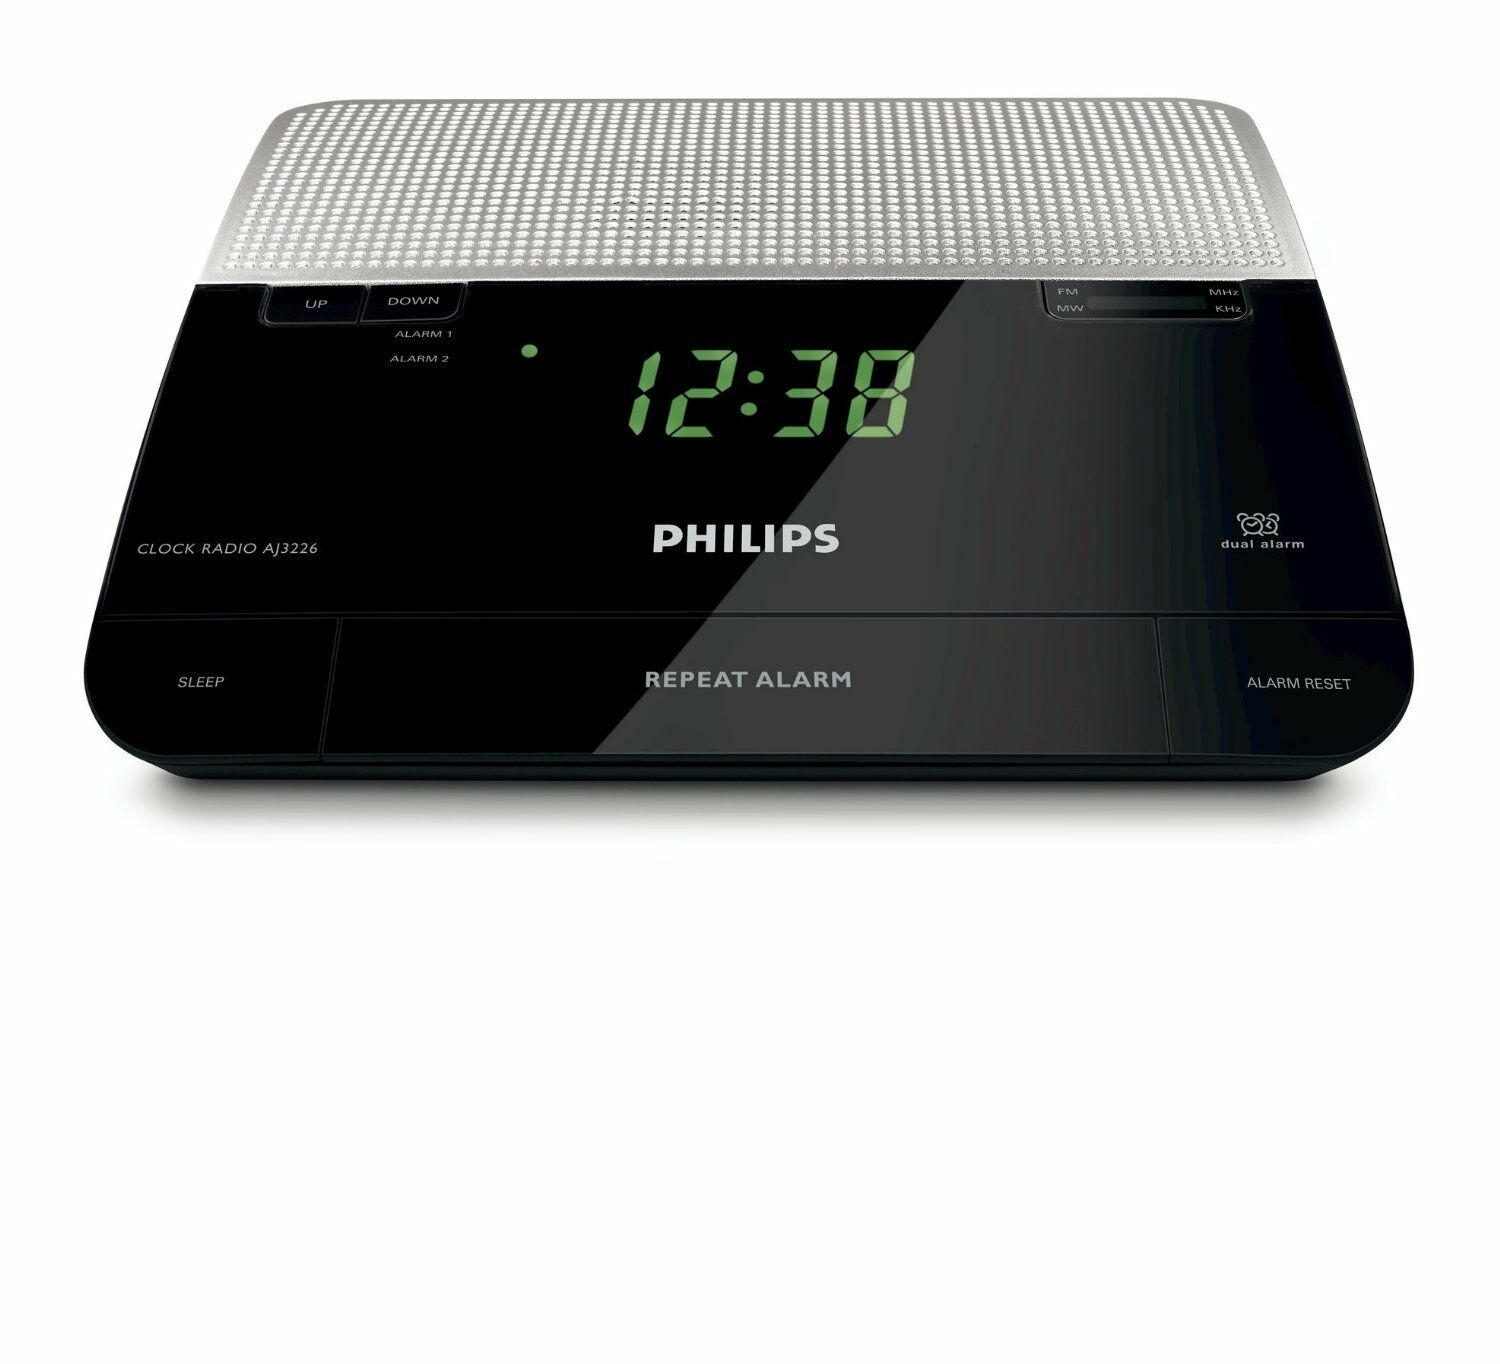 philips aj3226 fm digital tuning alarm clock radio 220 240 volts 8712581402723 ebay. Black Bedroom Furniture Sets. Home Design Ideas